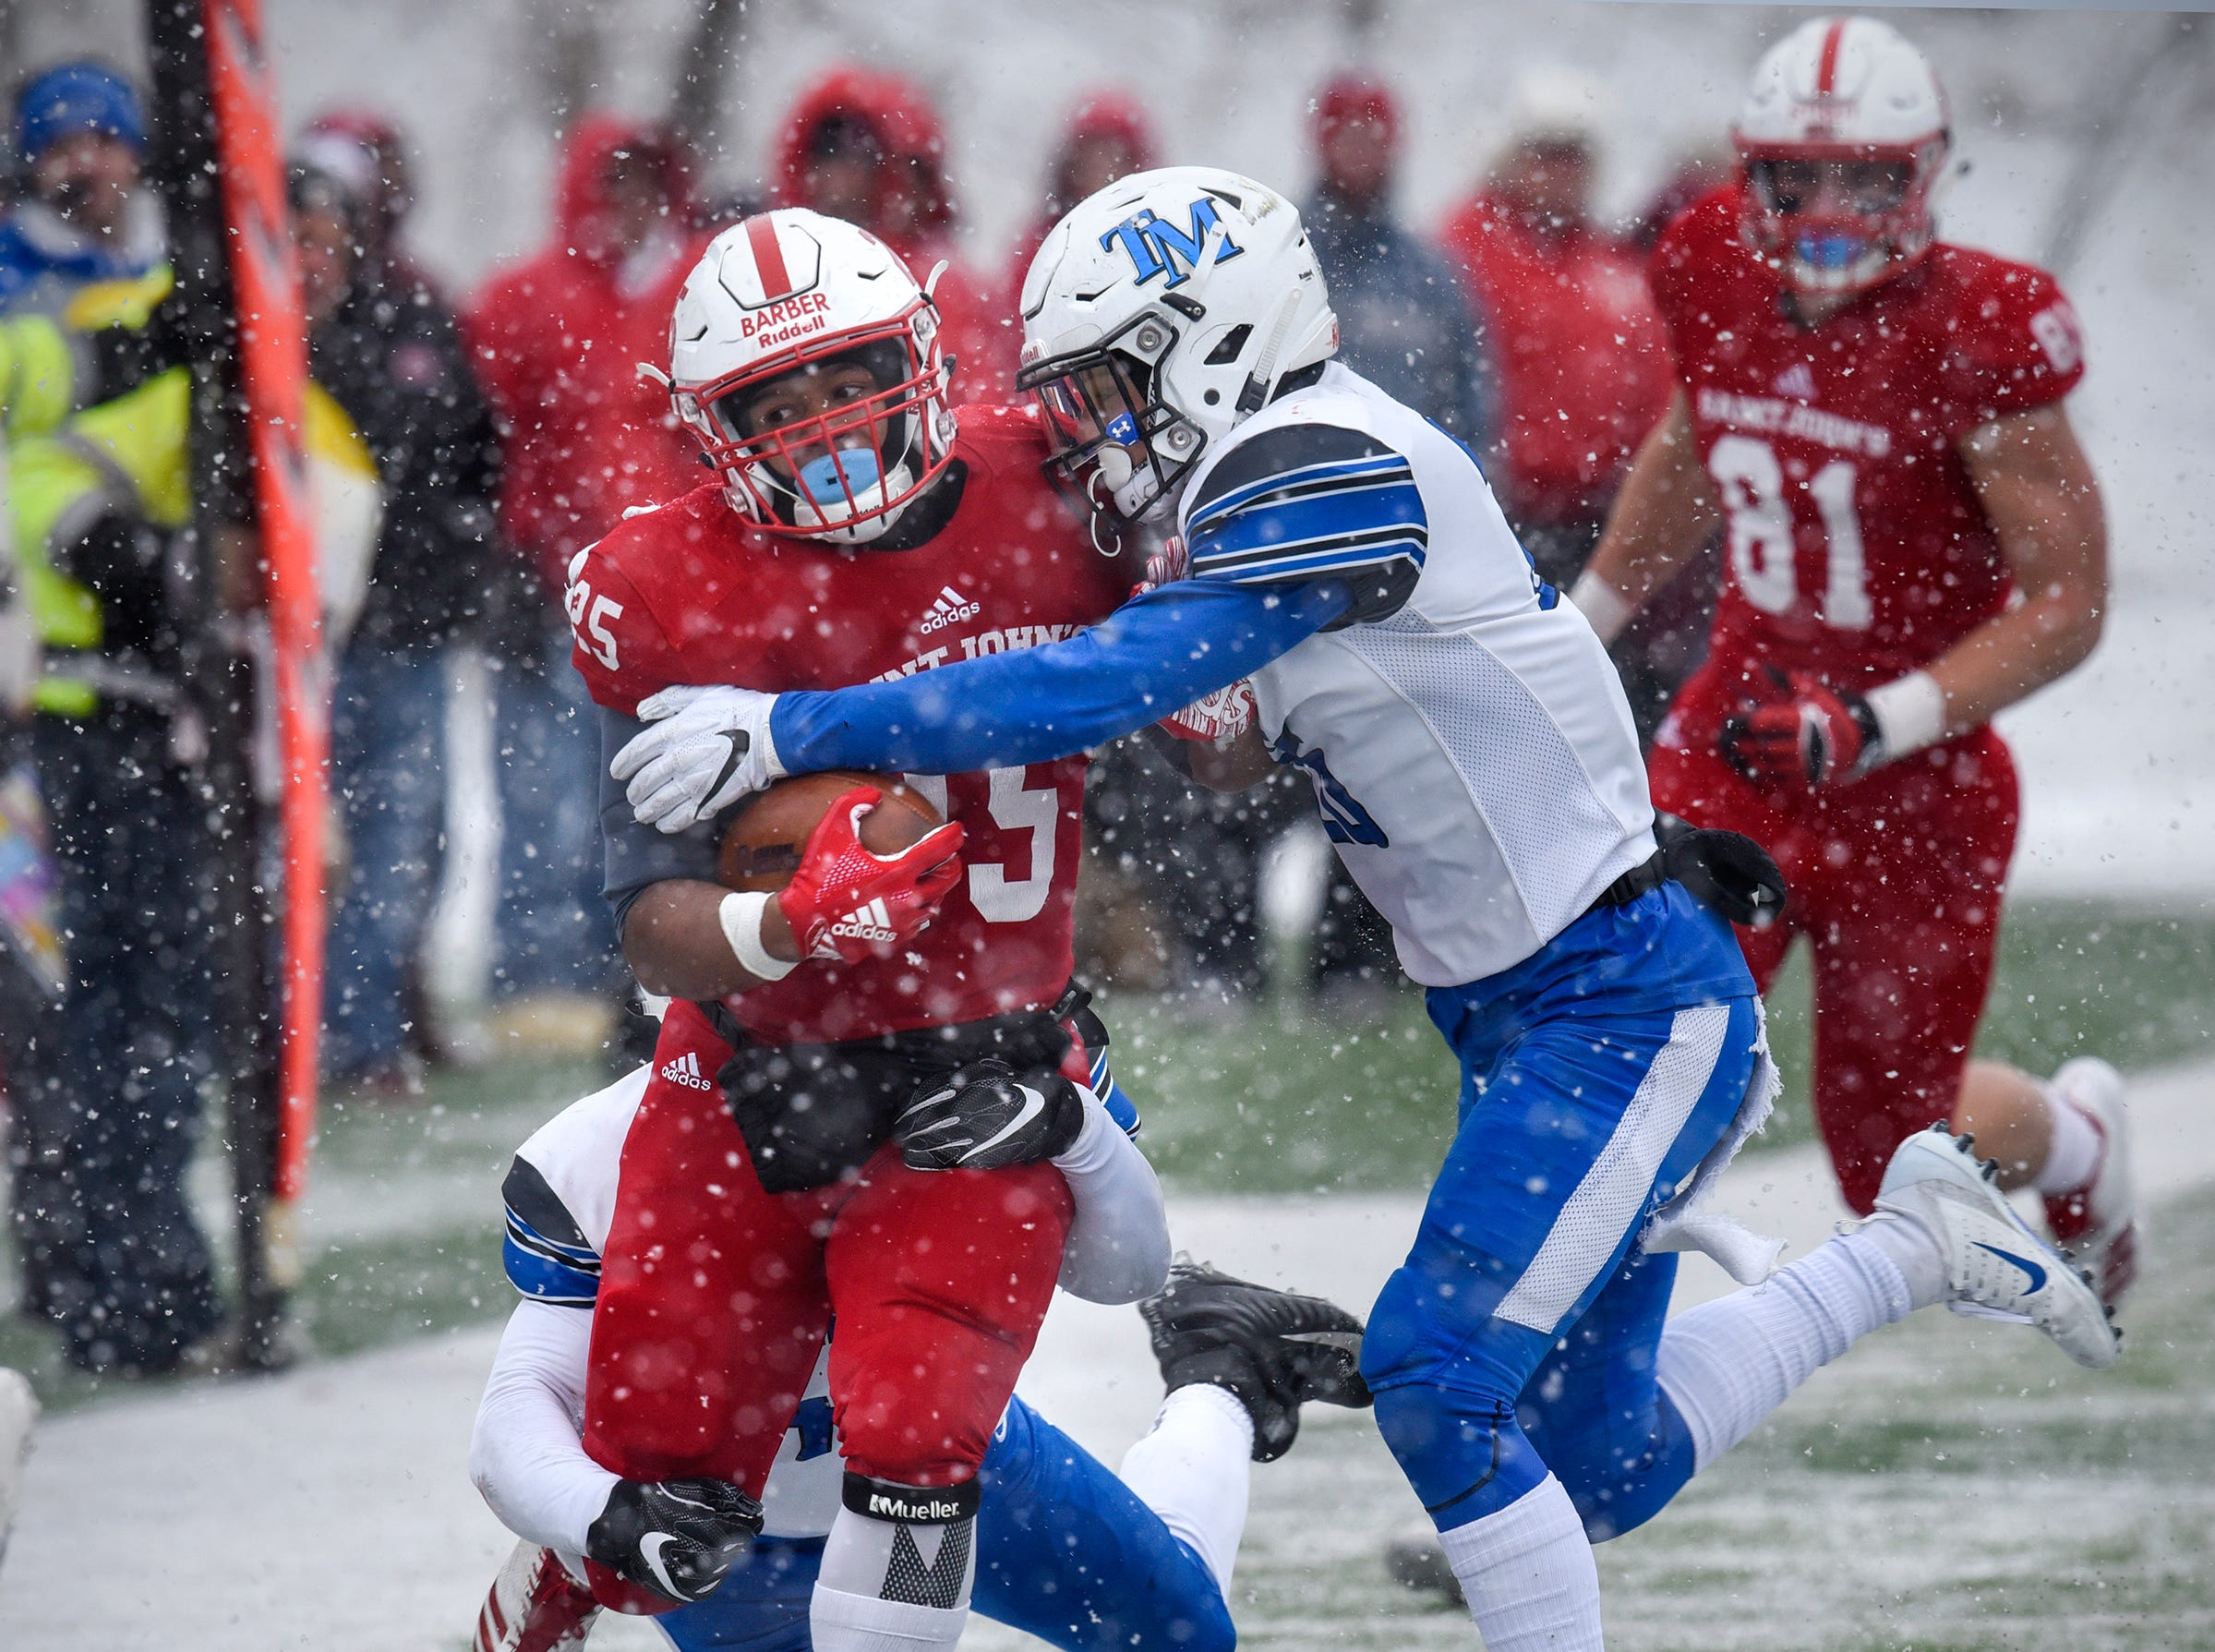 St. John's gains yardage during the first half of the Saturday, Nov. 10, game against Thomas More University at Clemens Stadium in Collegeville.